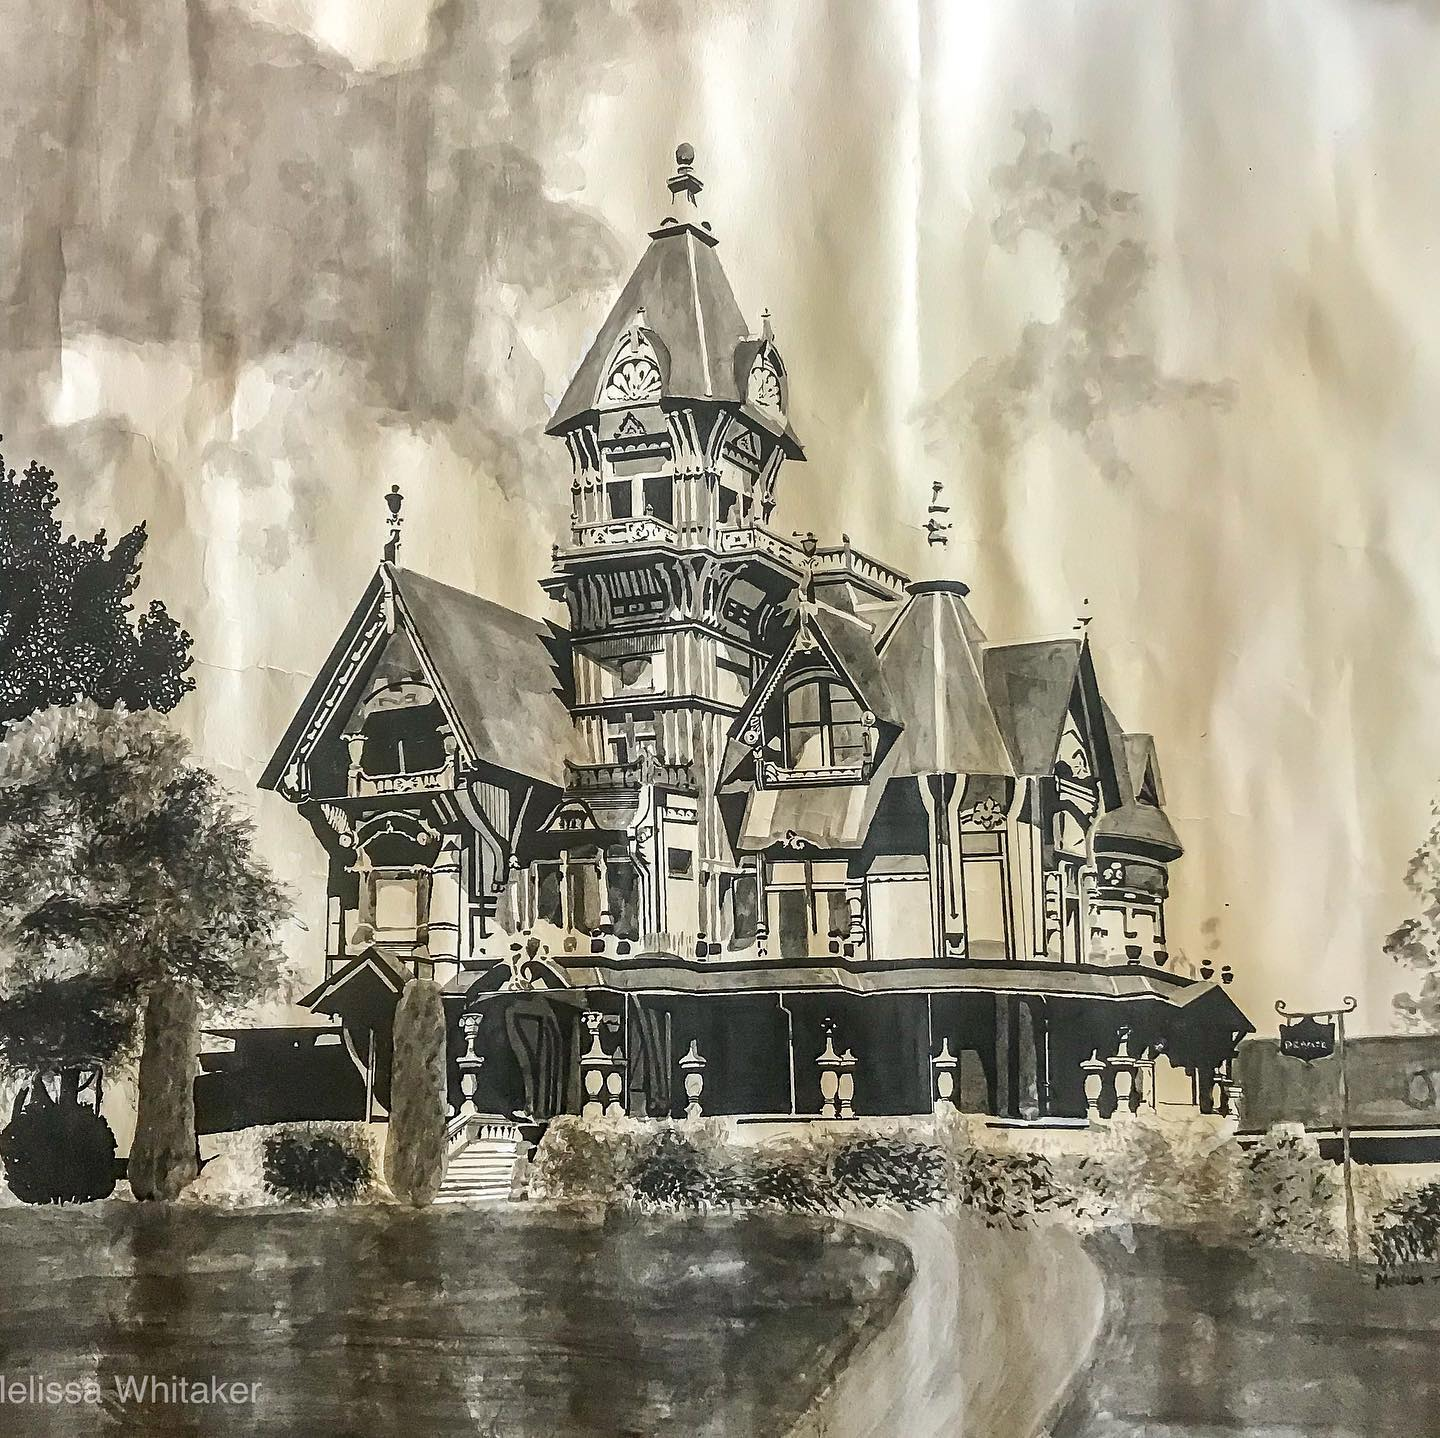 Ink illustration of a Victorian Manor house in Eureka, California.